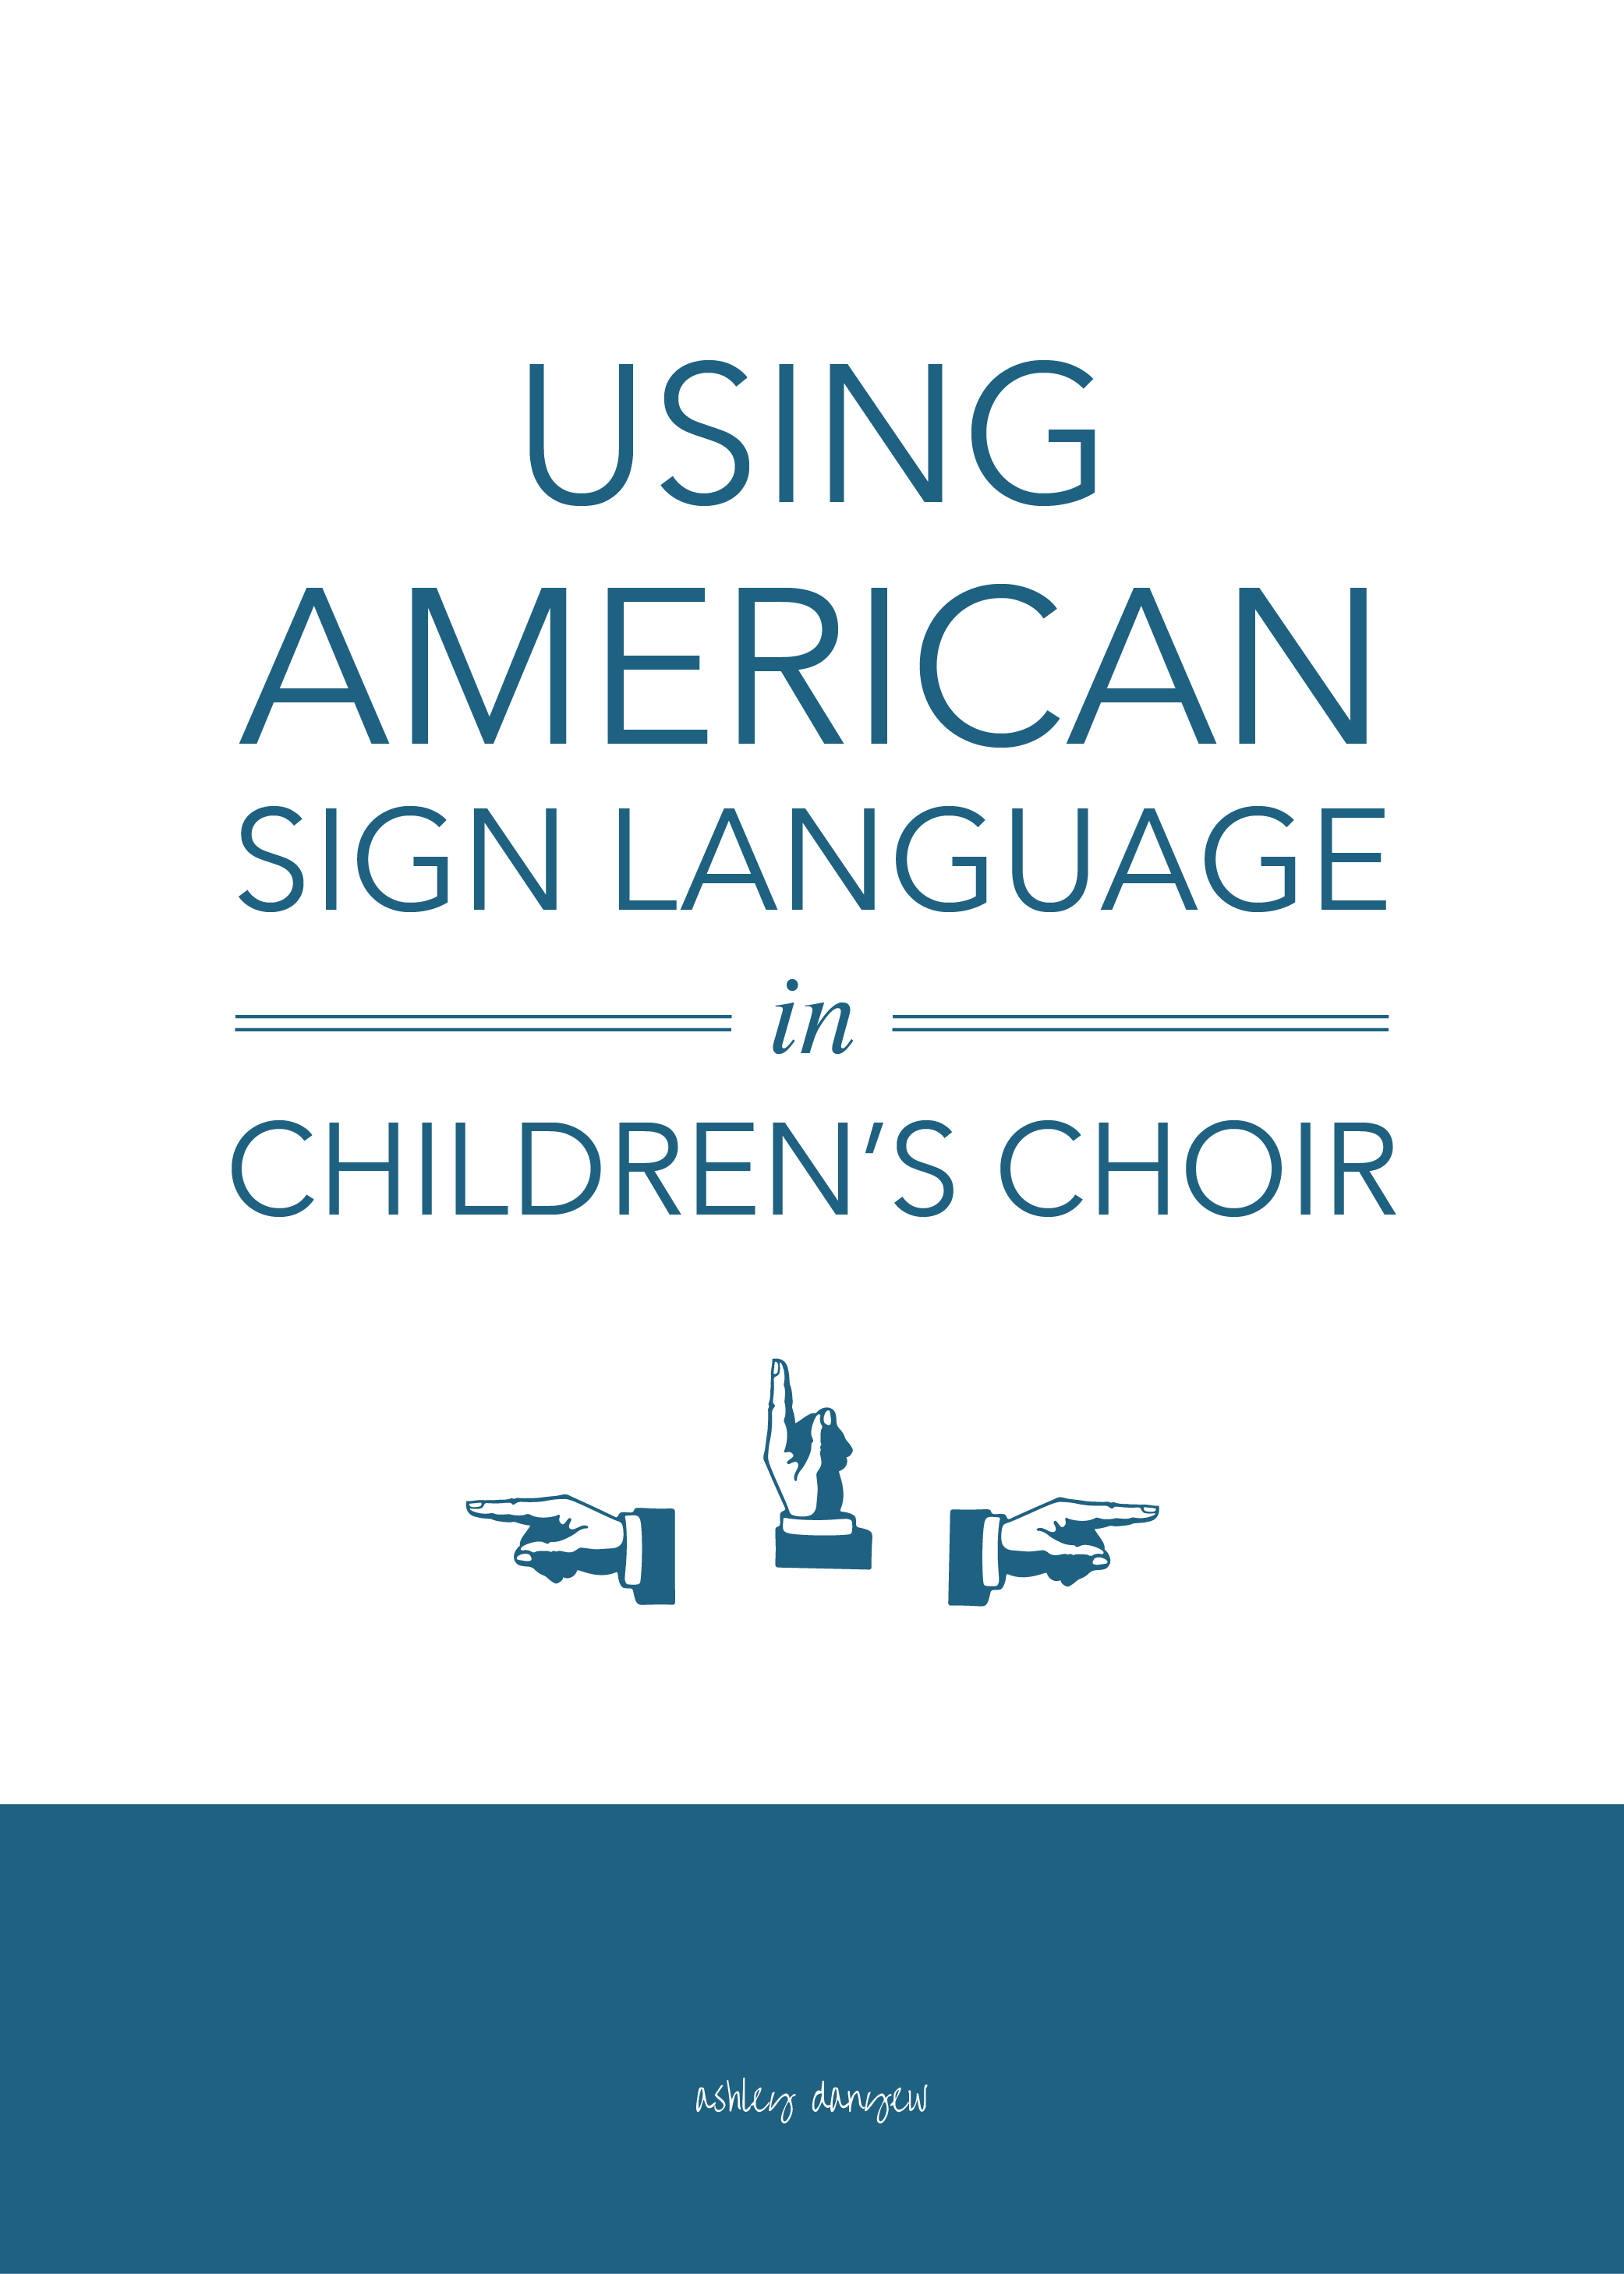 image relating to Lyrics to Away in a Manger Printable called Getting American Signal Language in just Childrens Choir Ashley Danyew